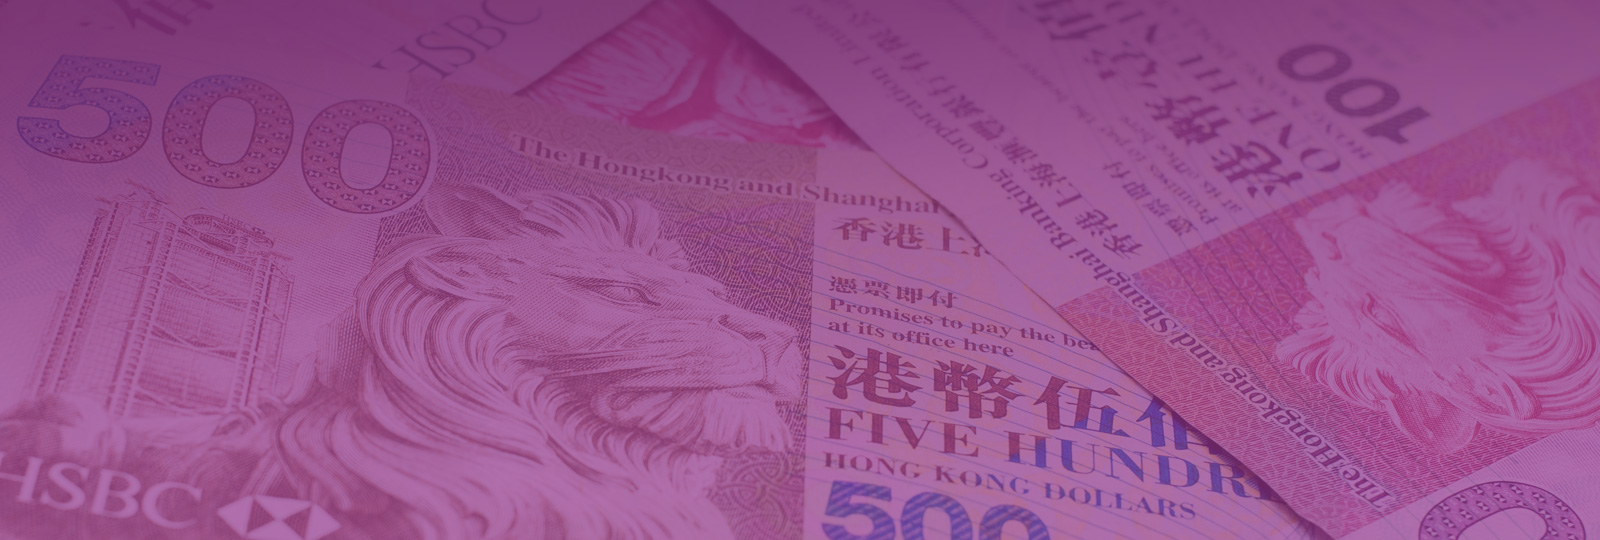 Buying Hong Kong Dollars - Buy HKD